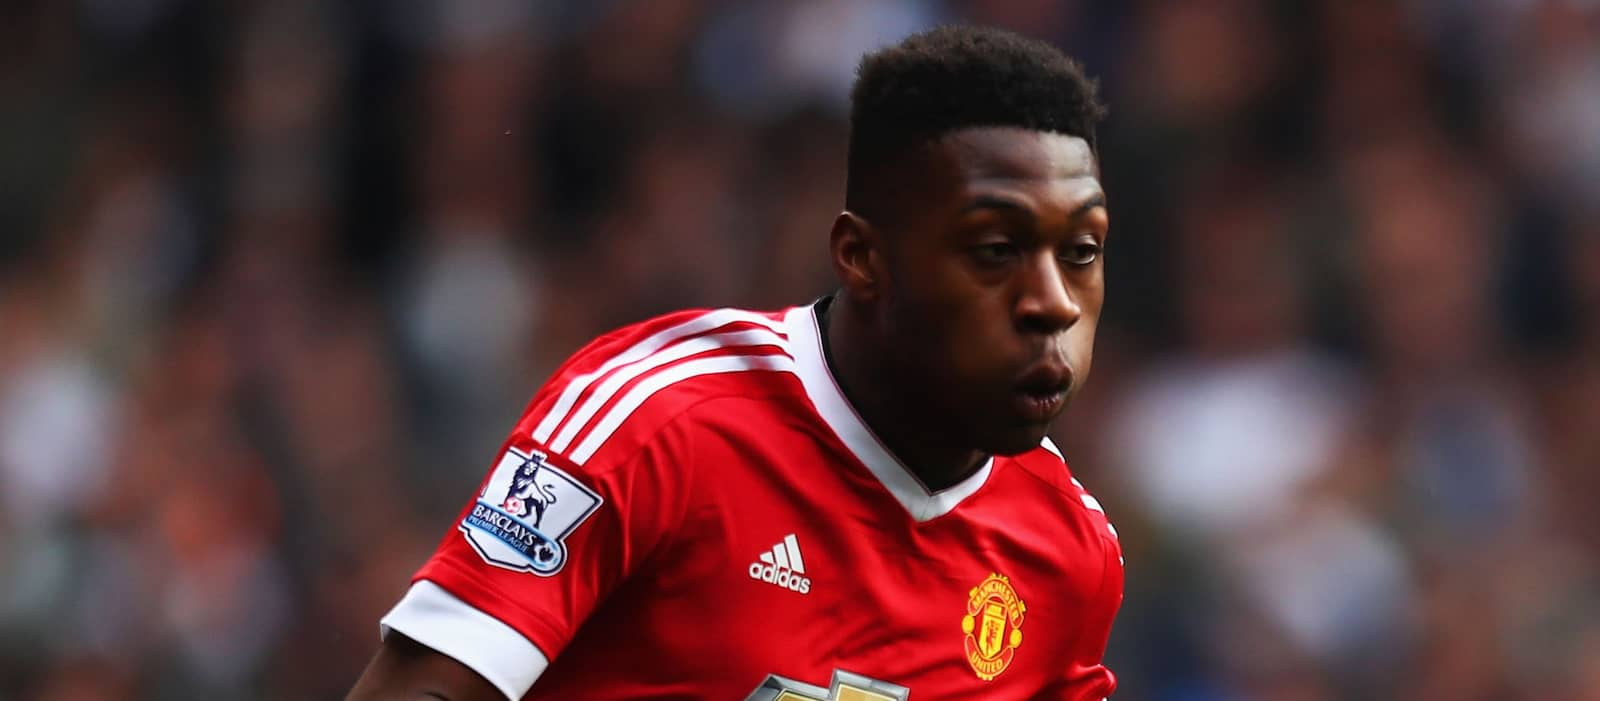 Timothy Fosu-Mensah enjoys excellent display despite Manchester United's loss against Tottenham Hotspur